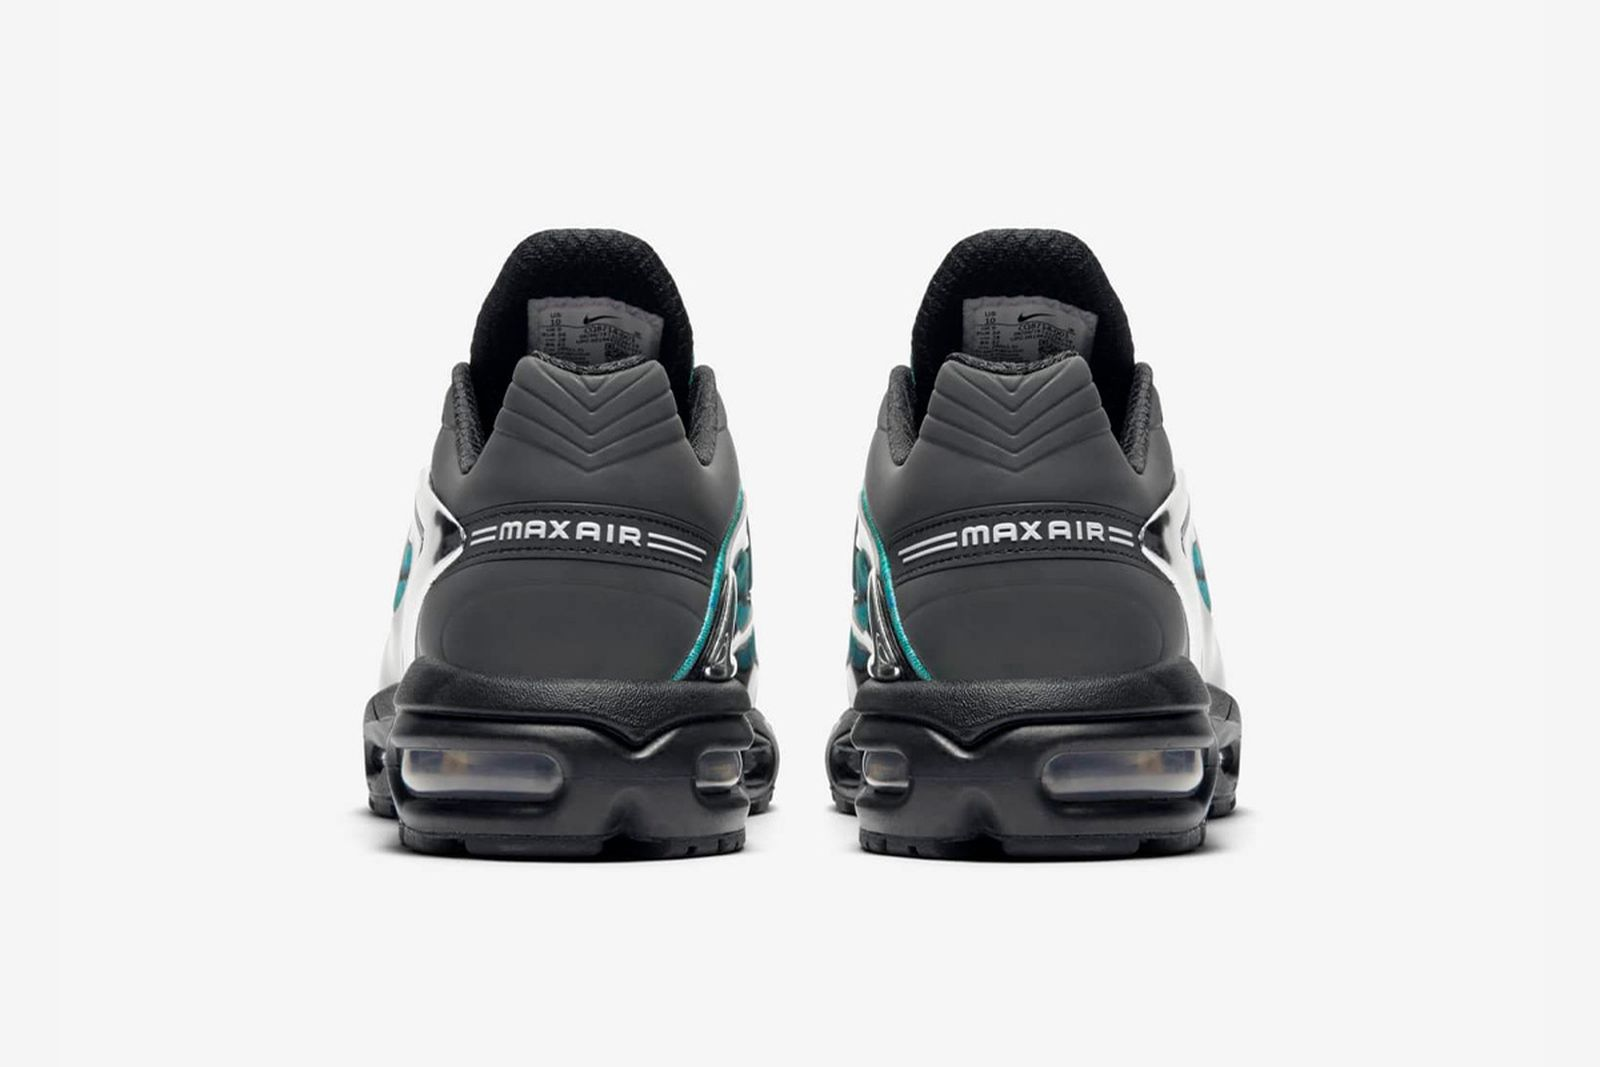 skepta-nike-air-max-tailwind-5-release-date-price-official-03